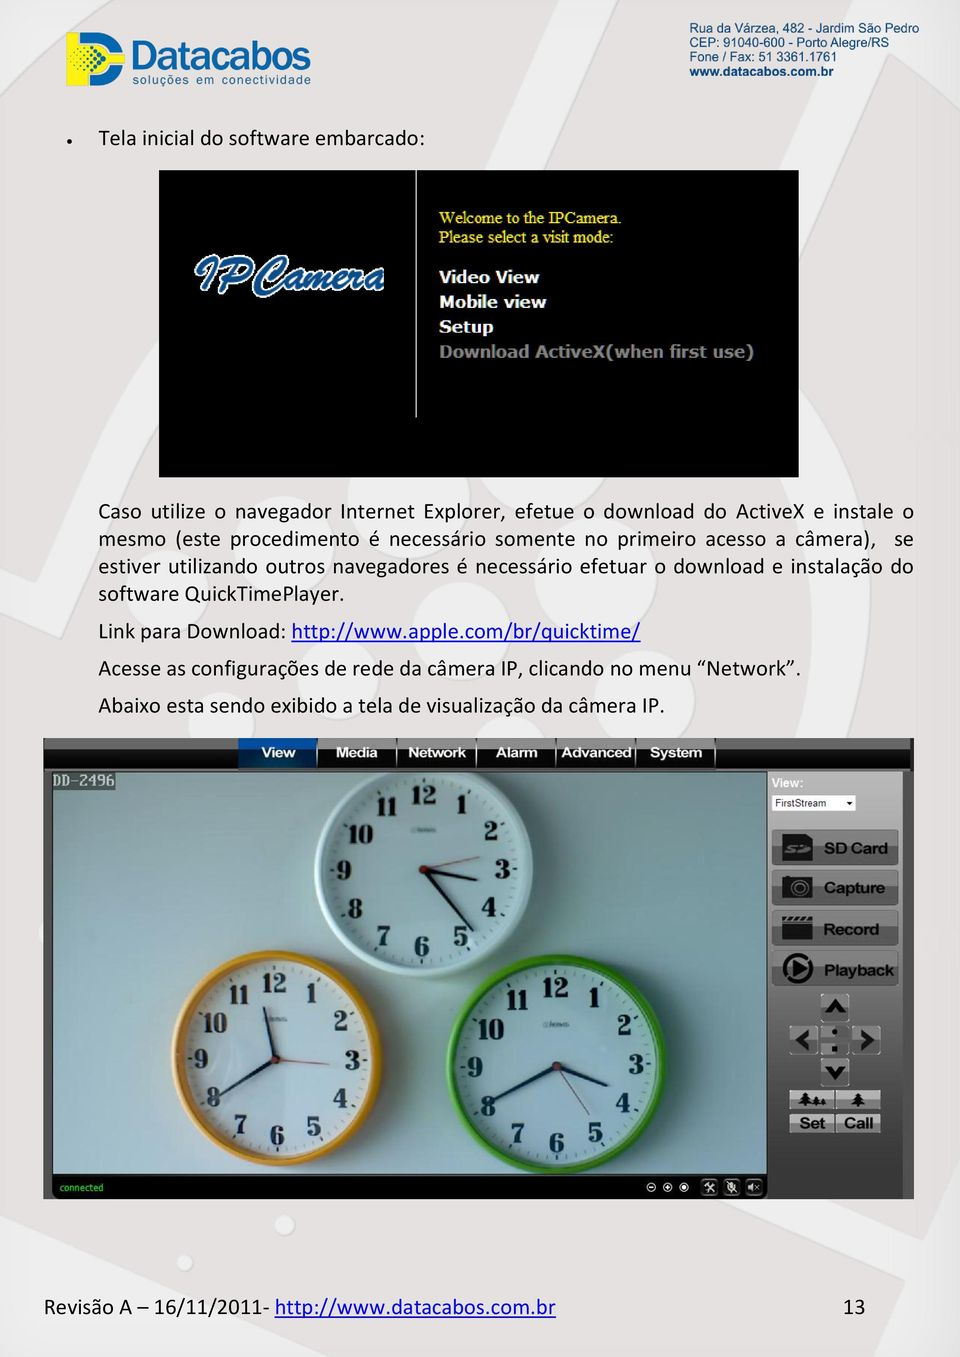 instalação do software QuickTimePlayer. Link para Download: http://www.apple.